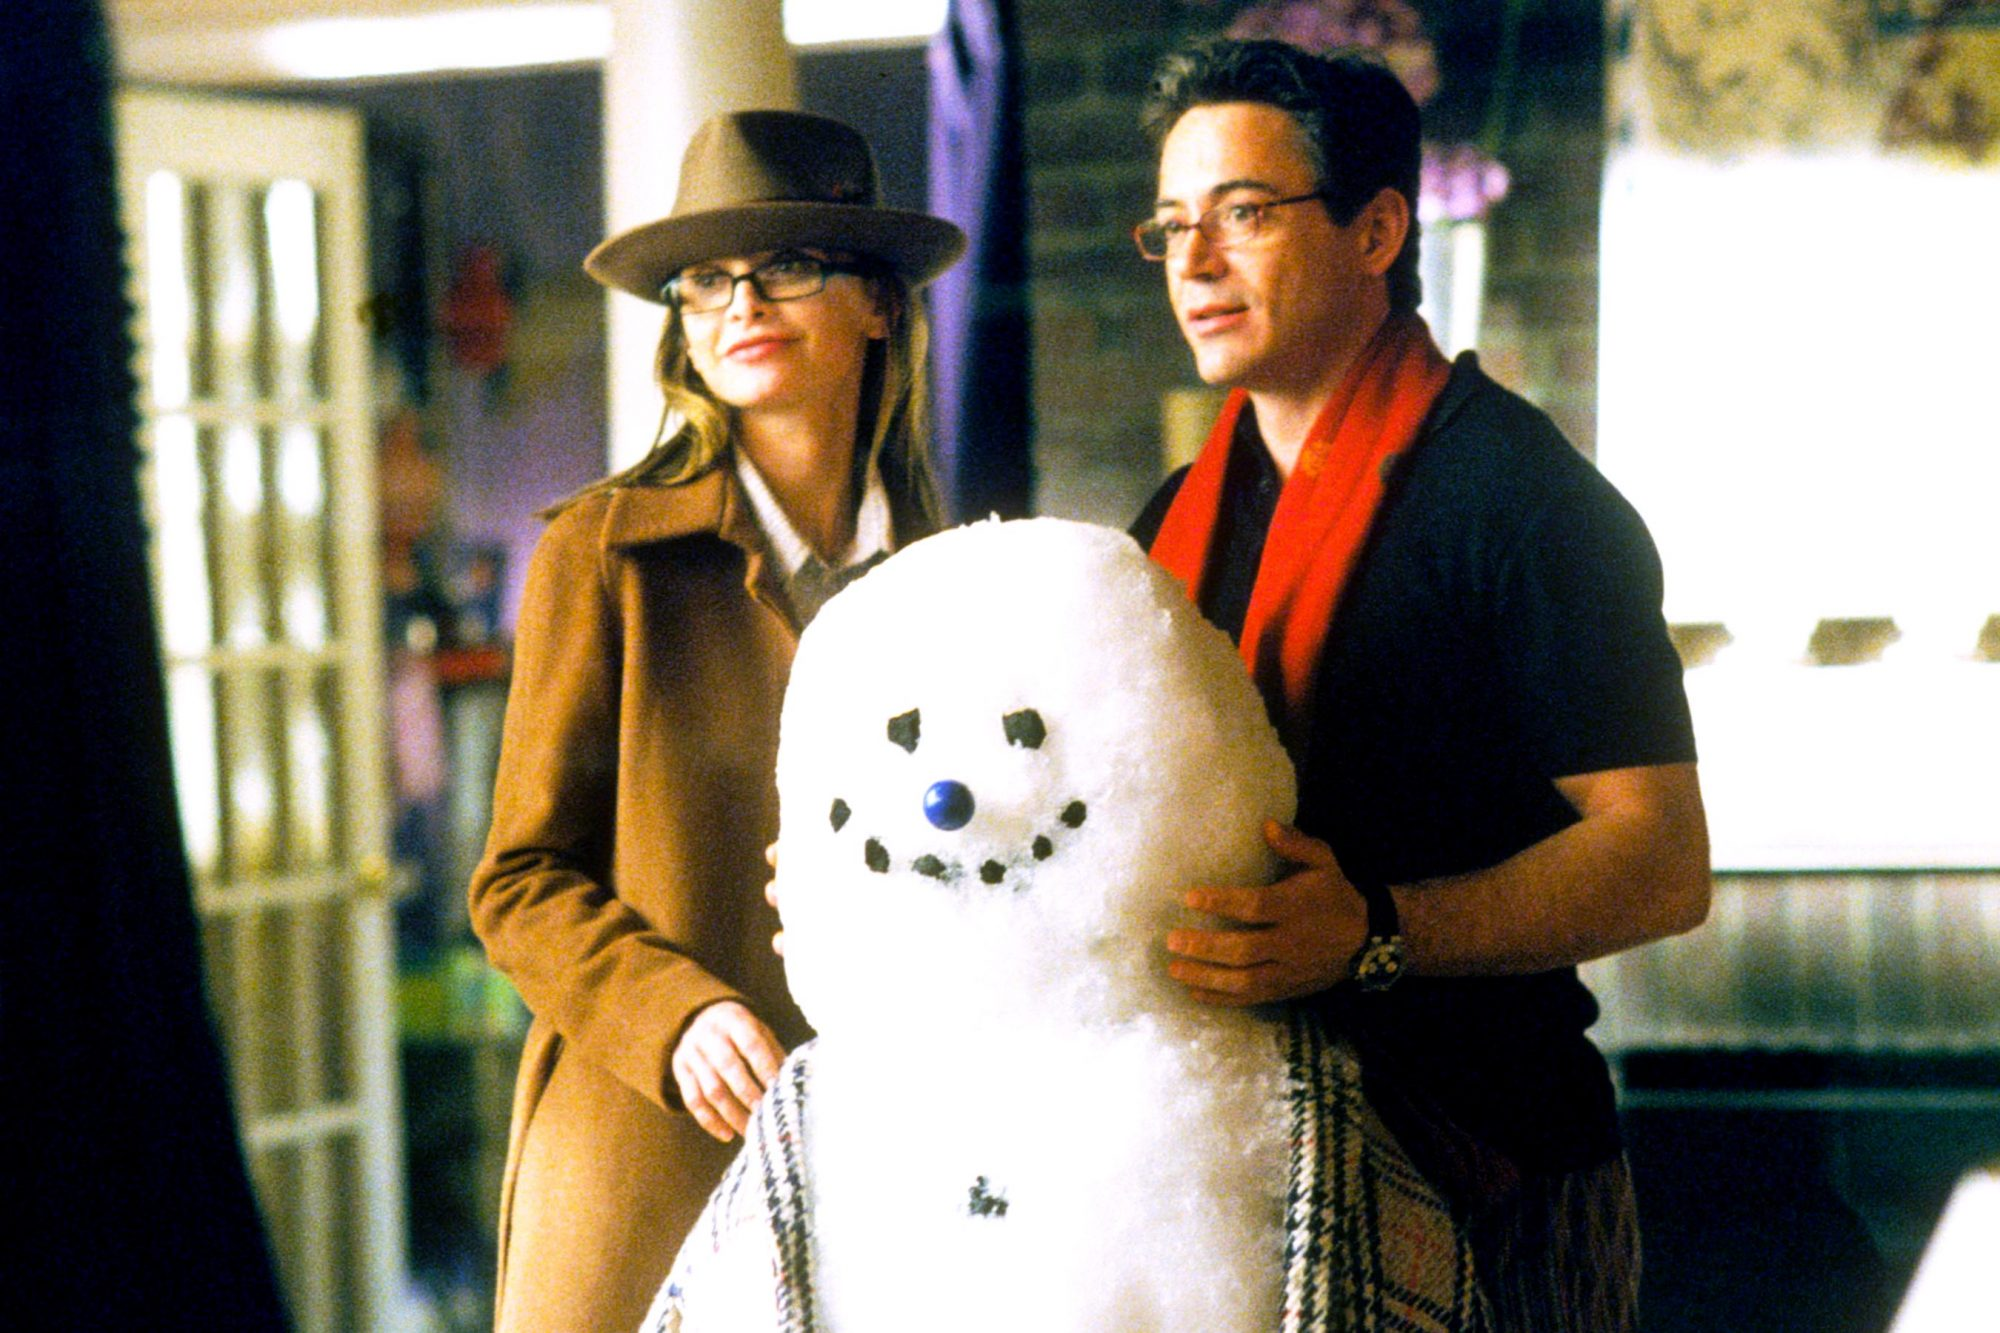 ALLY MCBEAL, Calista Flockhart, Robert Downey Jr., 4th Season, 1997-2002, TM and Copyright (c) 20th